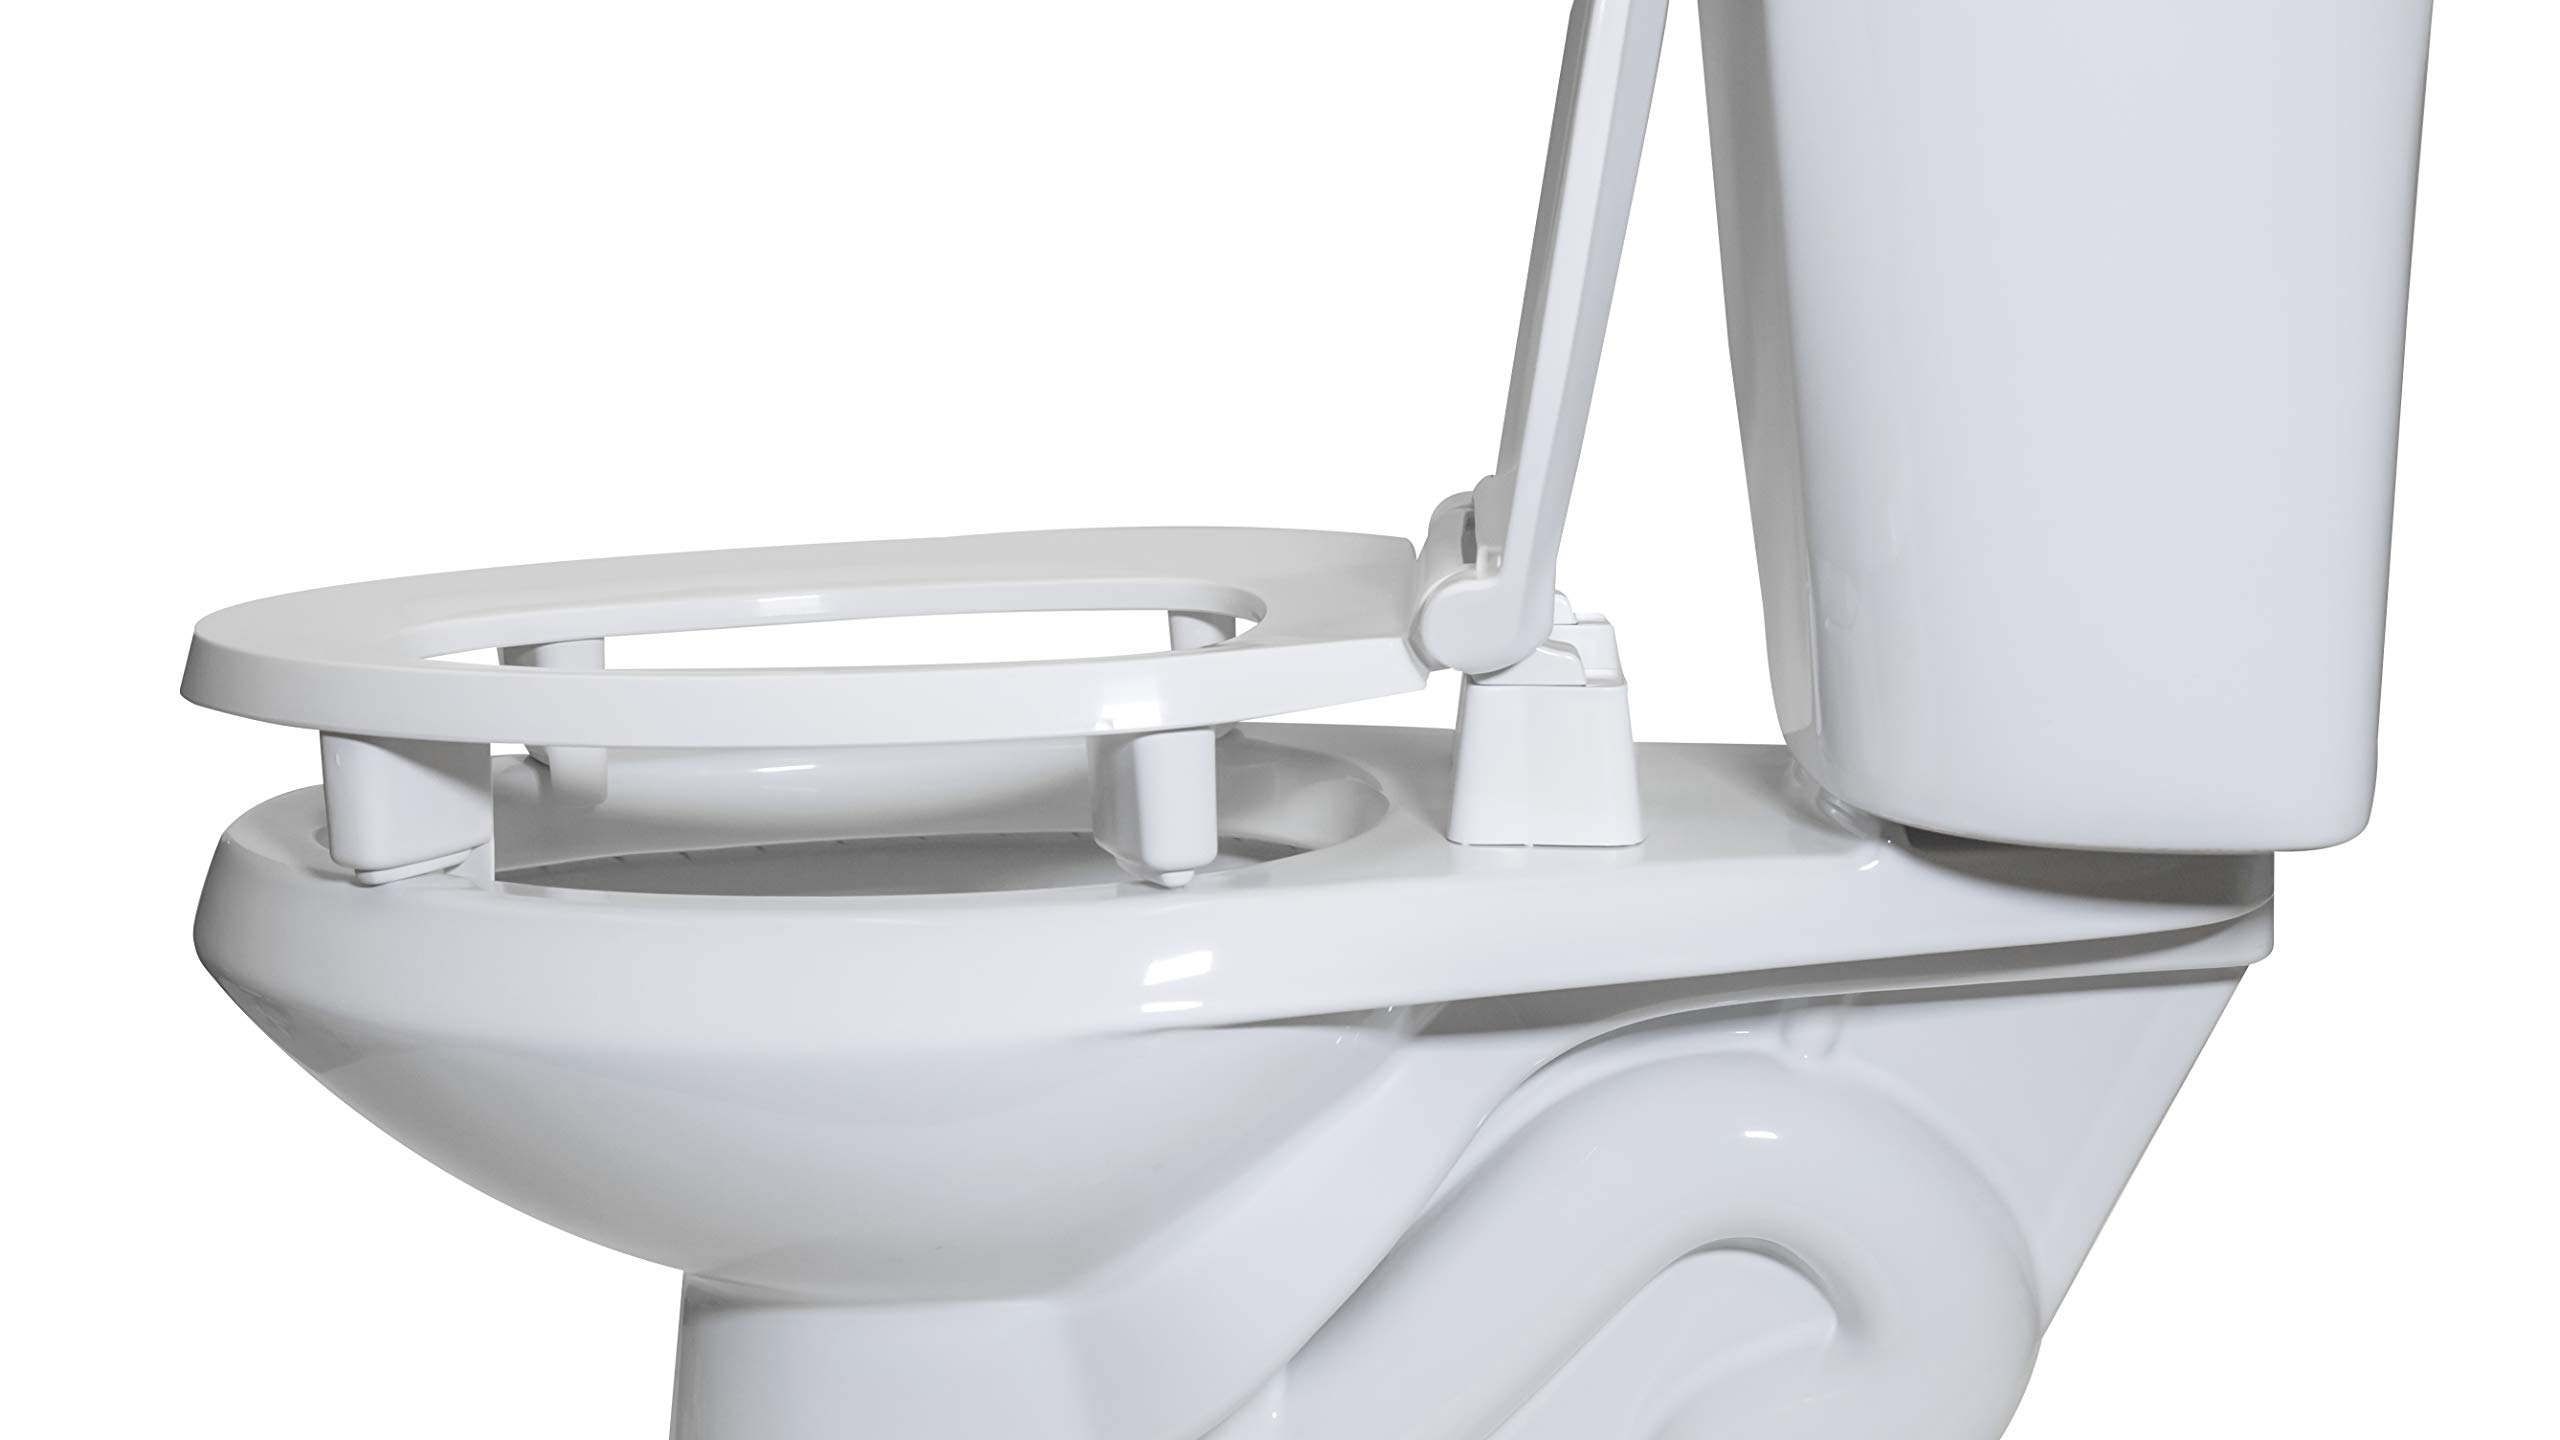 Centoco 3L800STS-001 Elongated 3'' Lift, Raised Plastic Toilet Seat, Closed Front with Cover, ADA Compliant Handicap Medical Assistance Seat, White by Centoco (Image #2)